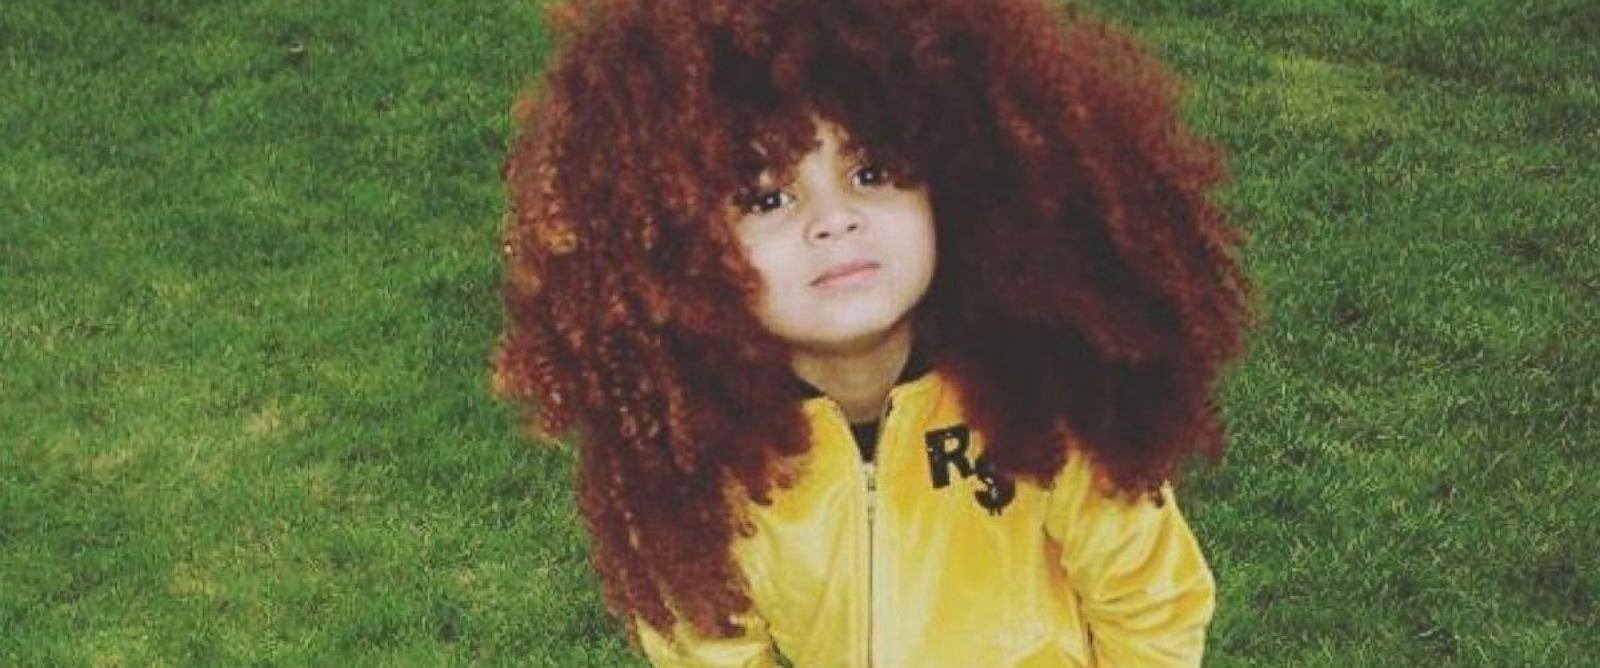 Big-Haired Little Boy Earns Internet Fame With Colossal ...